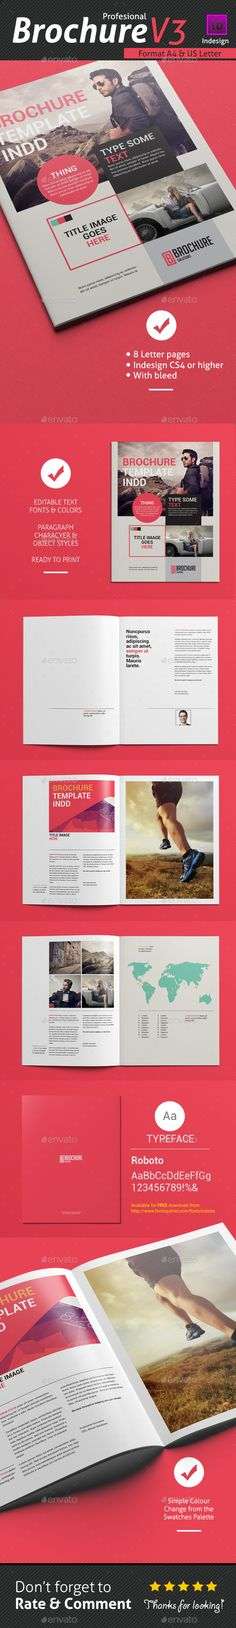 indesign free brochure template - free soft and clean square indesign brochure template